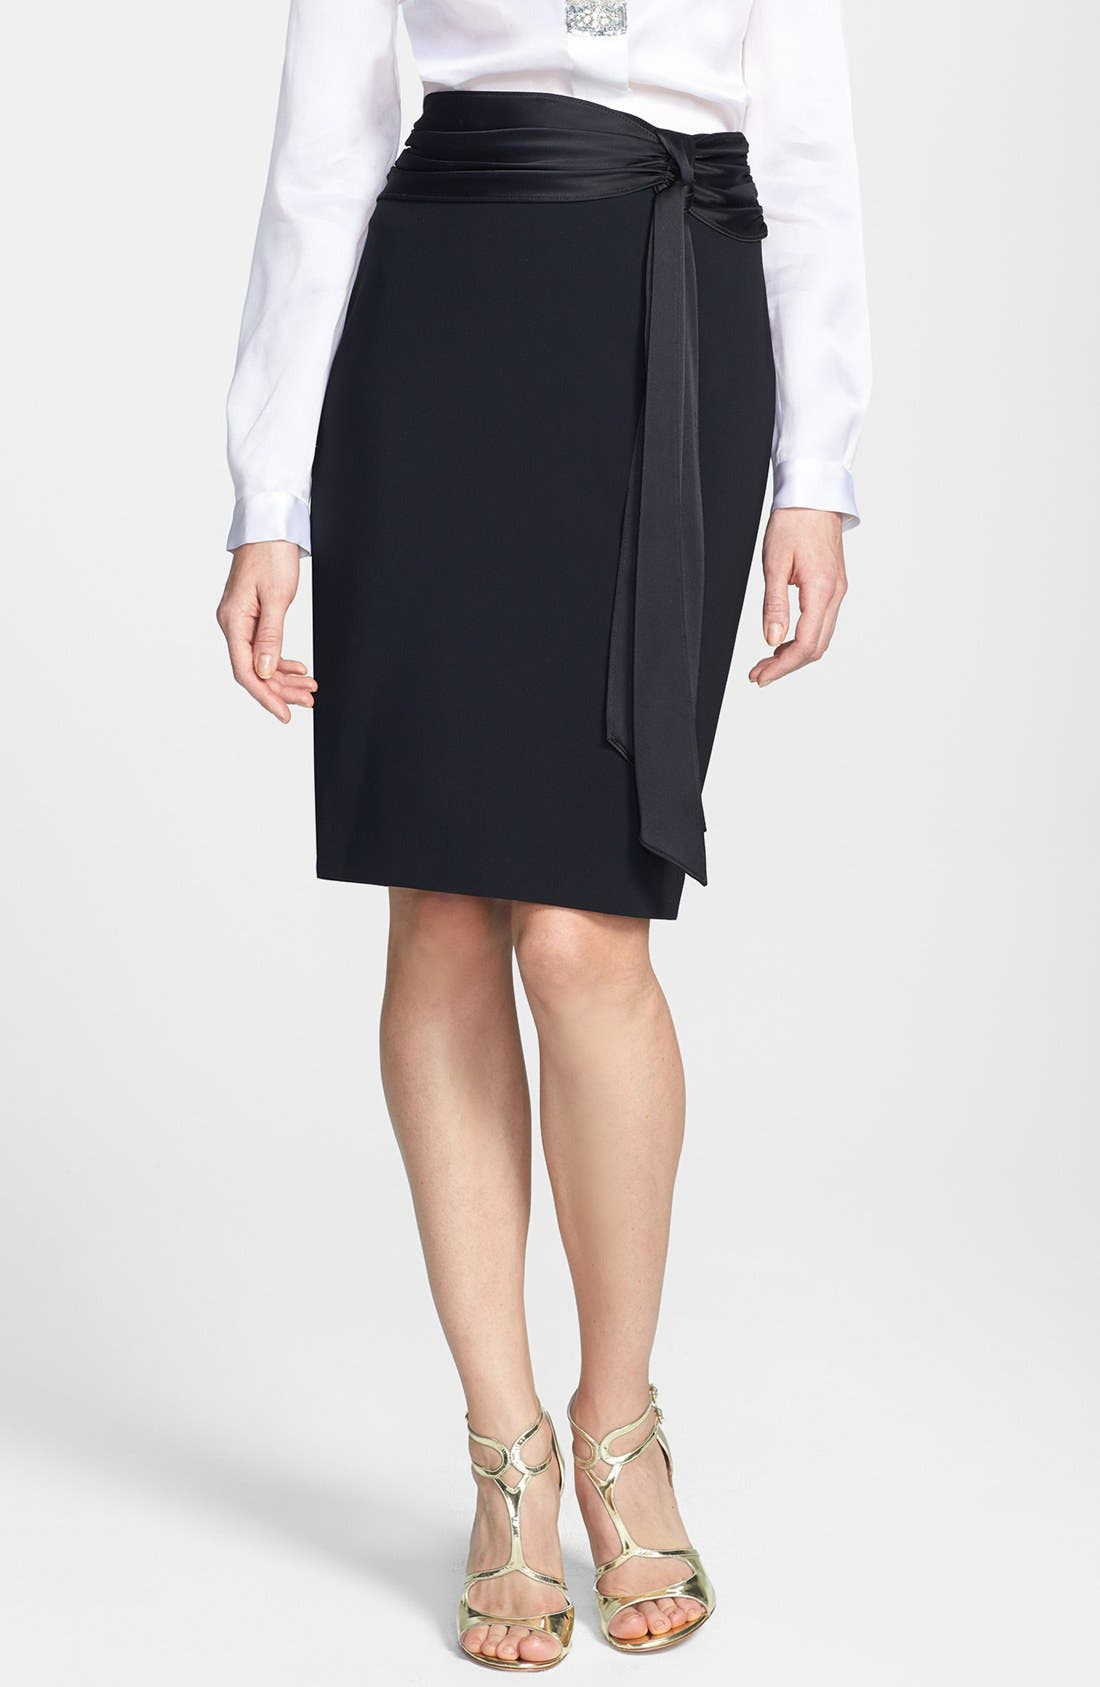 Alternate Image 1 Selected - St. John Collection Crepe Marocain Pencil Skirt with Liquid Satin Bow